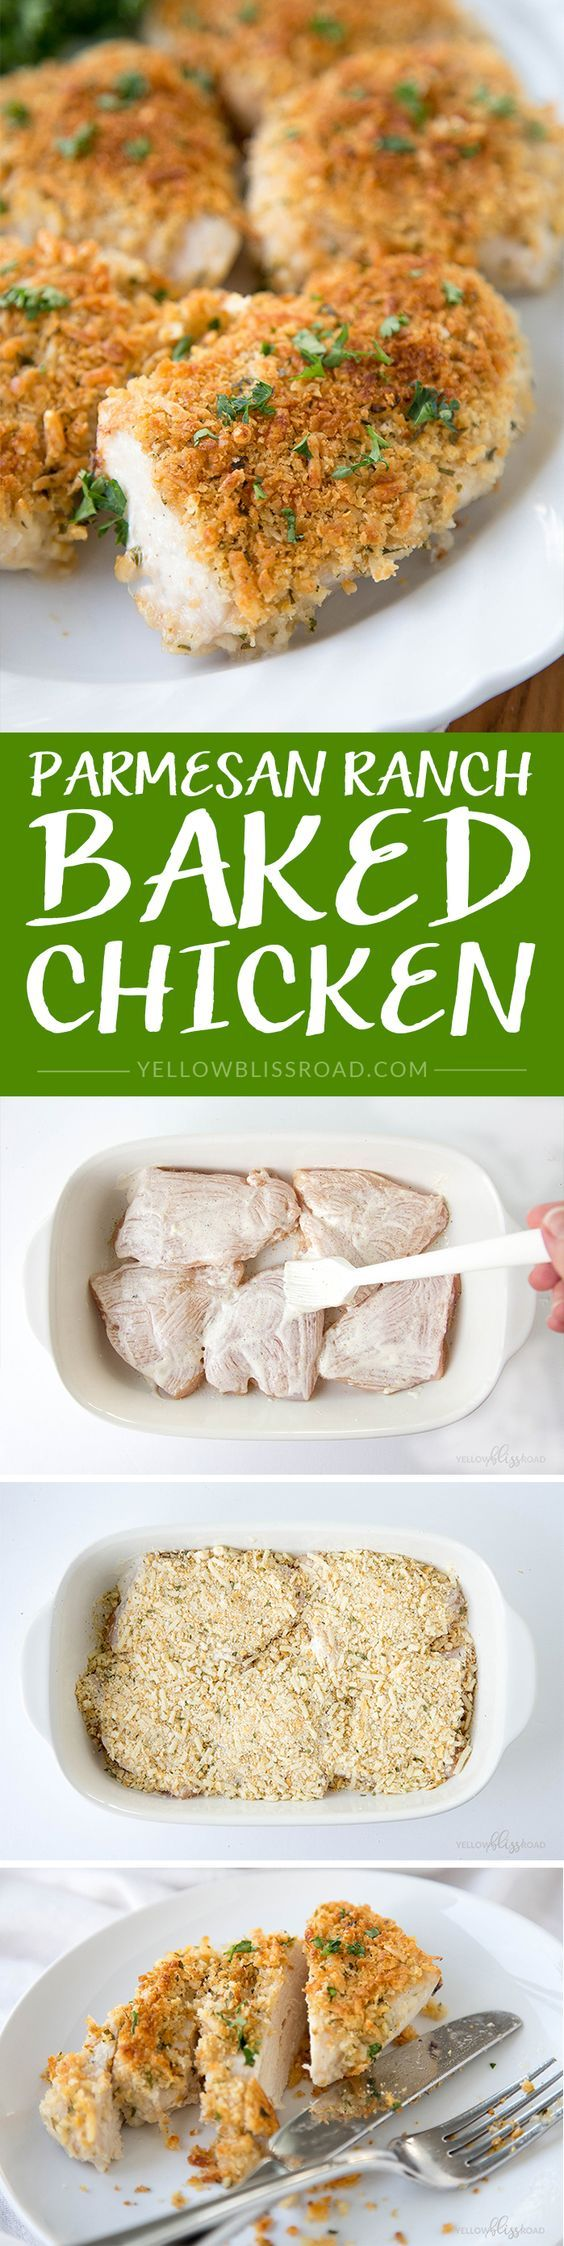 Parmesan Ranch Baked Chicken - Tender and juicy chicken breast dipped in ranch and topped with freshly grated Parmesan cheese and crushed crackers.